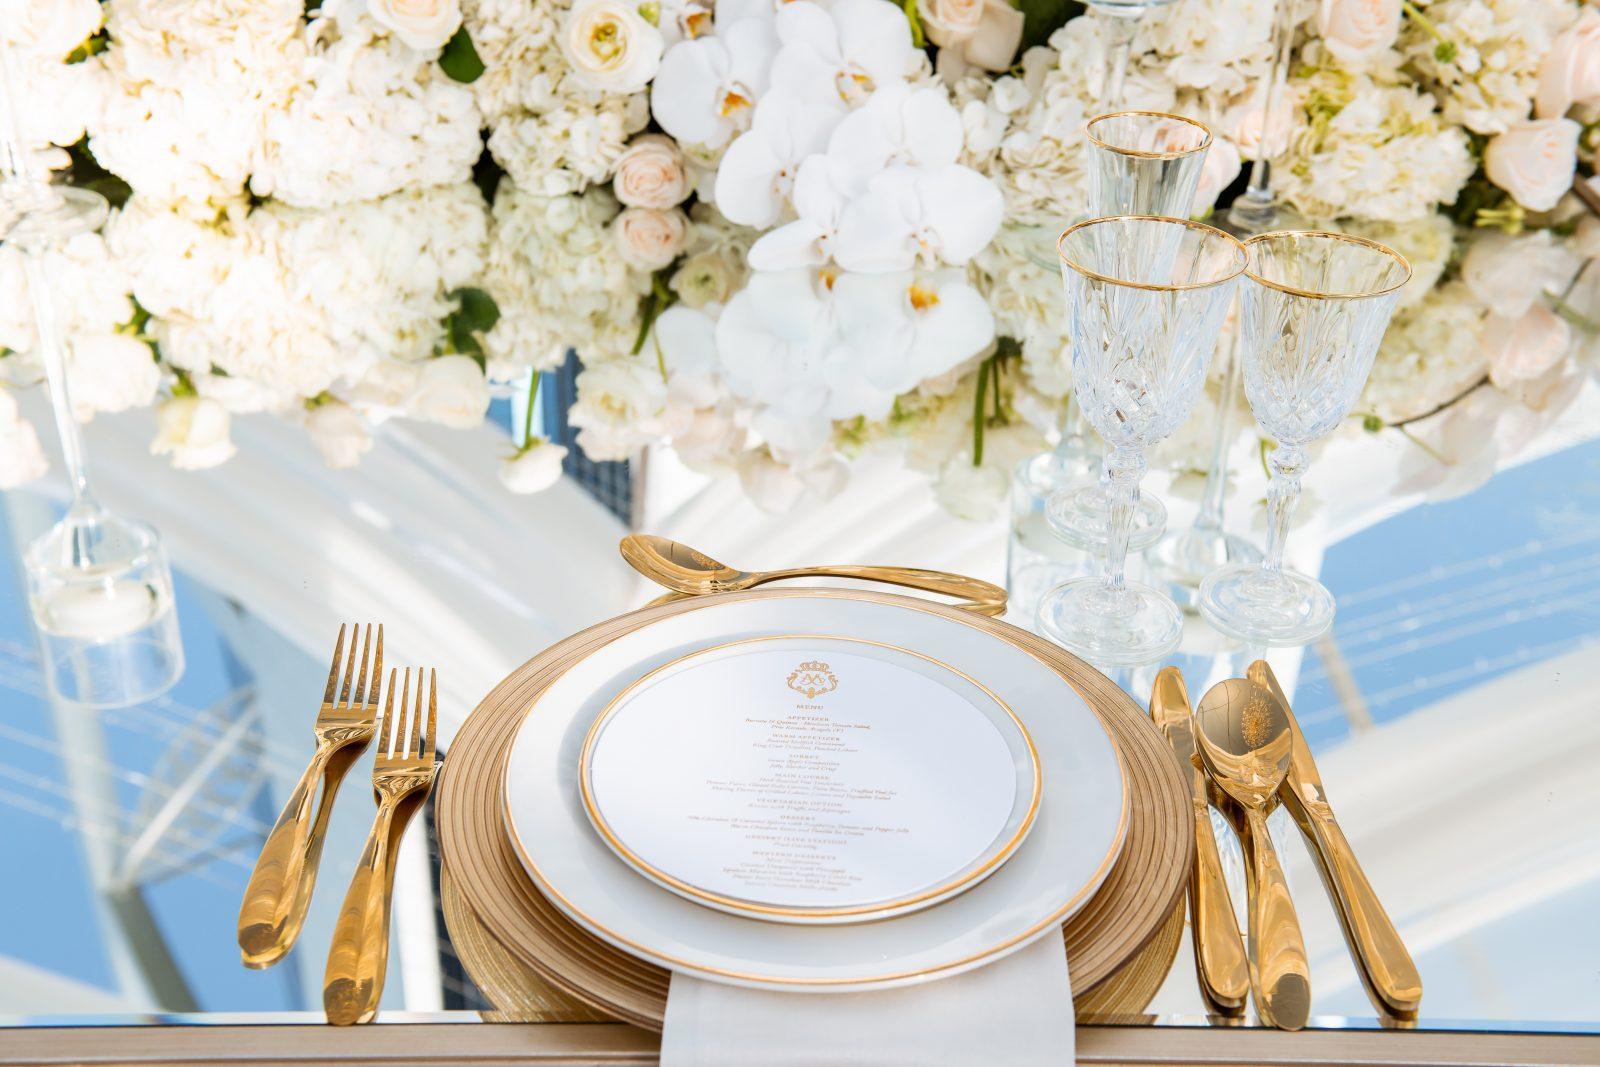 Event Chic Designs gold wedding place setting